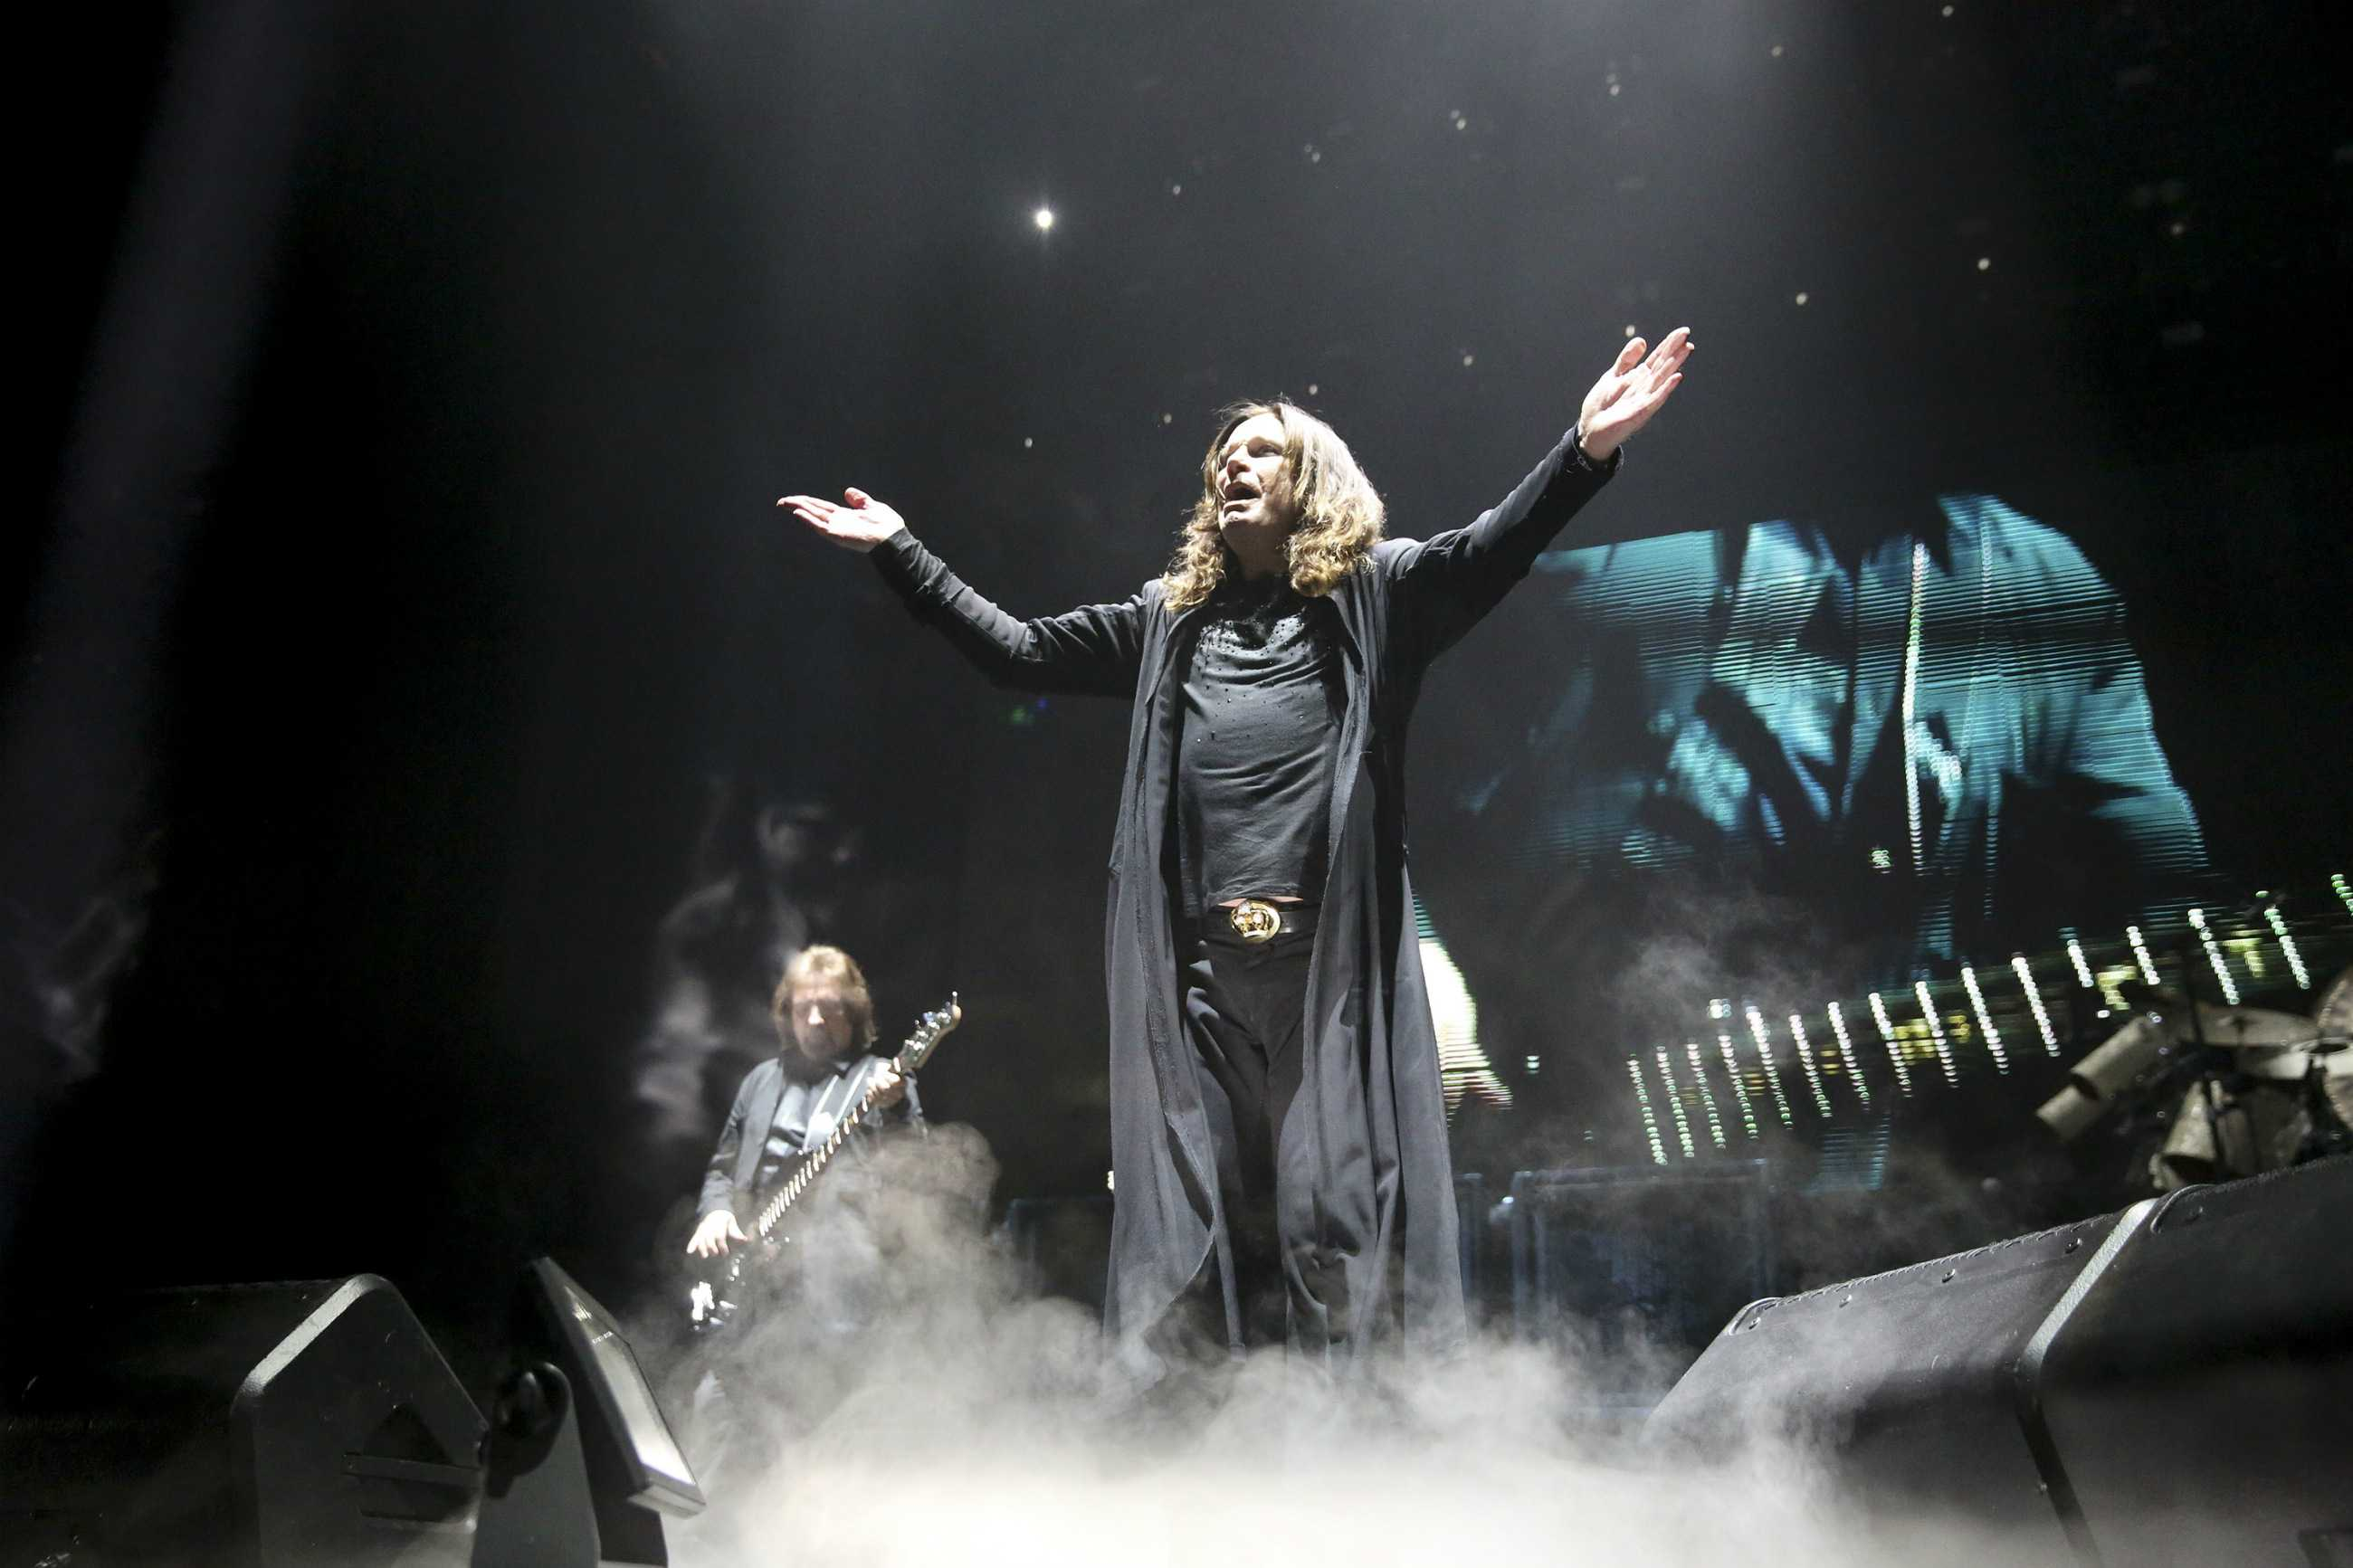 Ozzy Osbourne of Black Sabbath performs at the United Center Friday, Jan. 22 2016, in Chicago. (Armando L. Sanchez/Chicago Tribune/TNS)